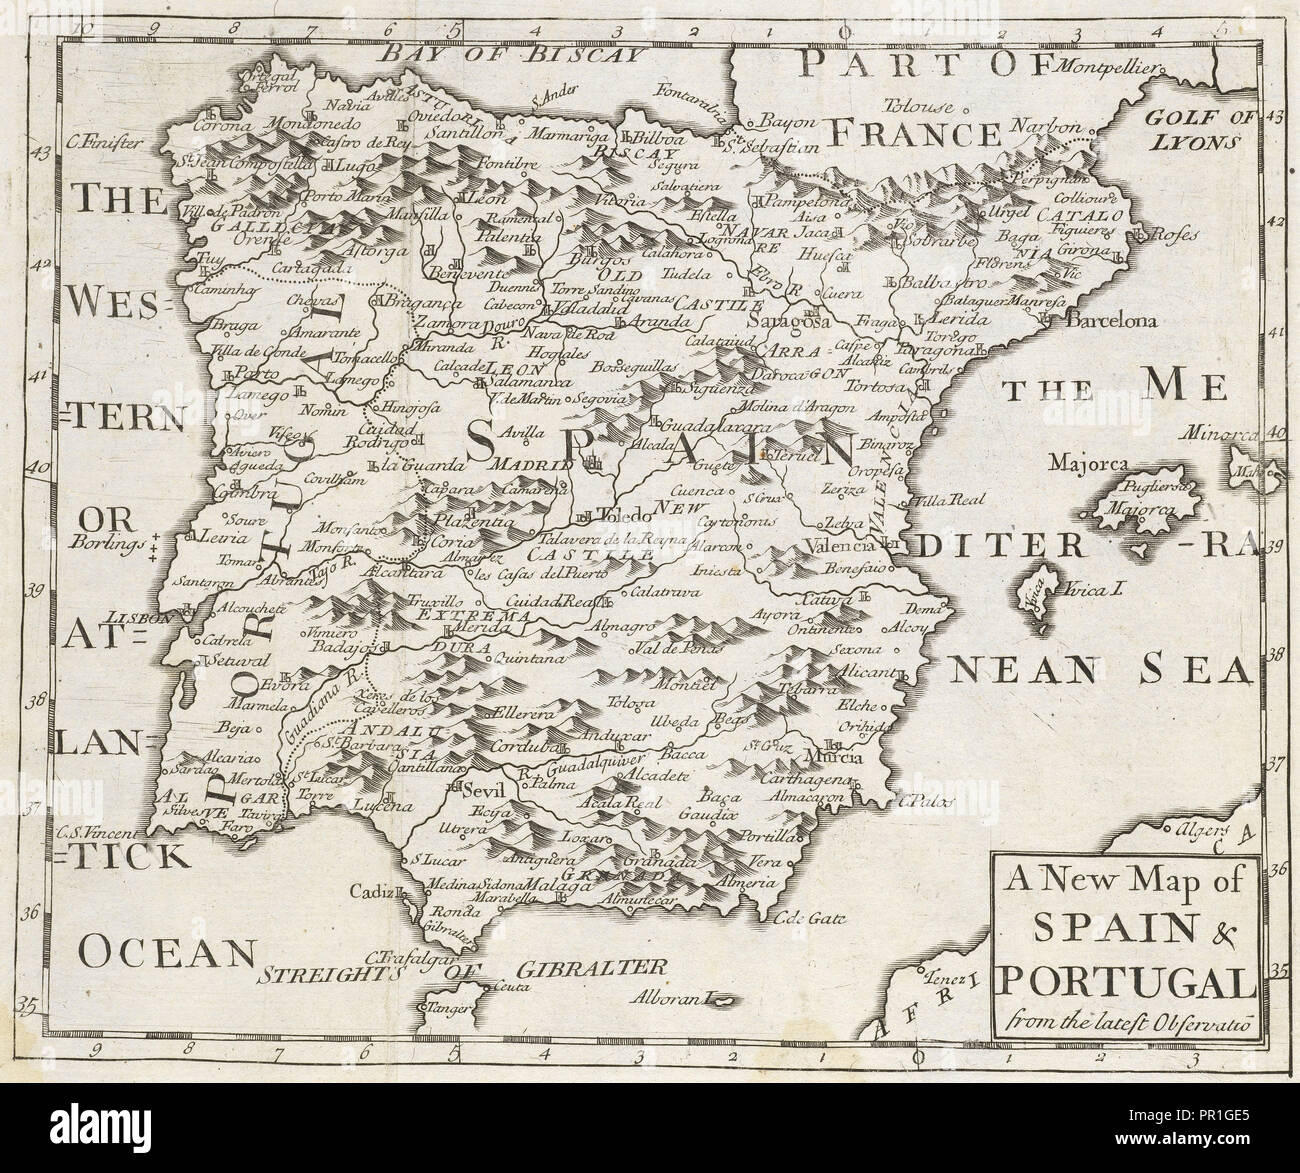 Map Of Spain Geography.A New Map Of Spain And Portugal From The Latest Observations